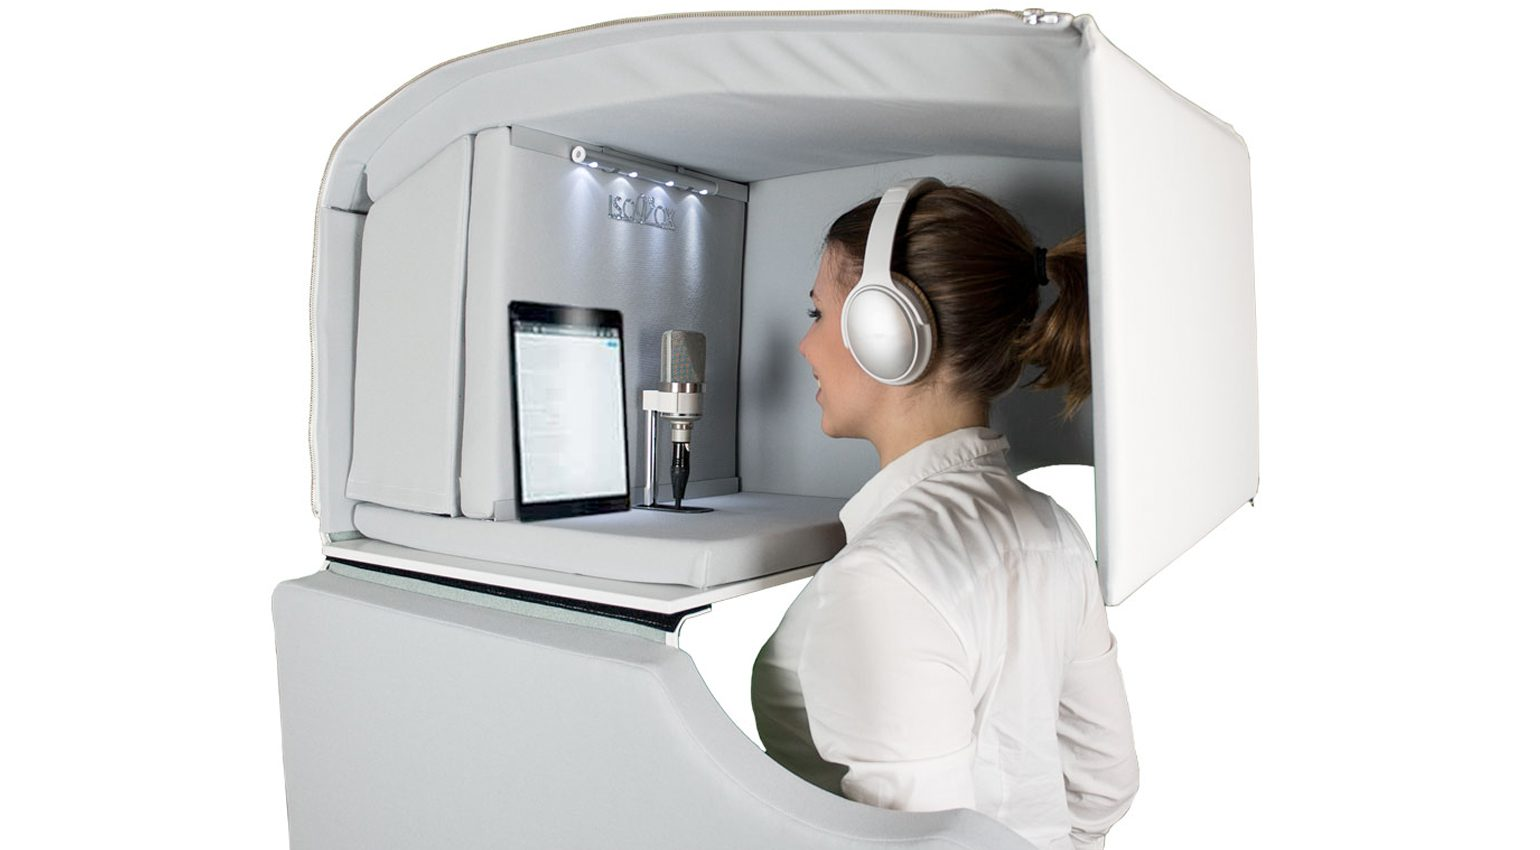 ISOVOX 2 Vocal Booth